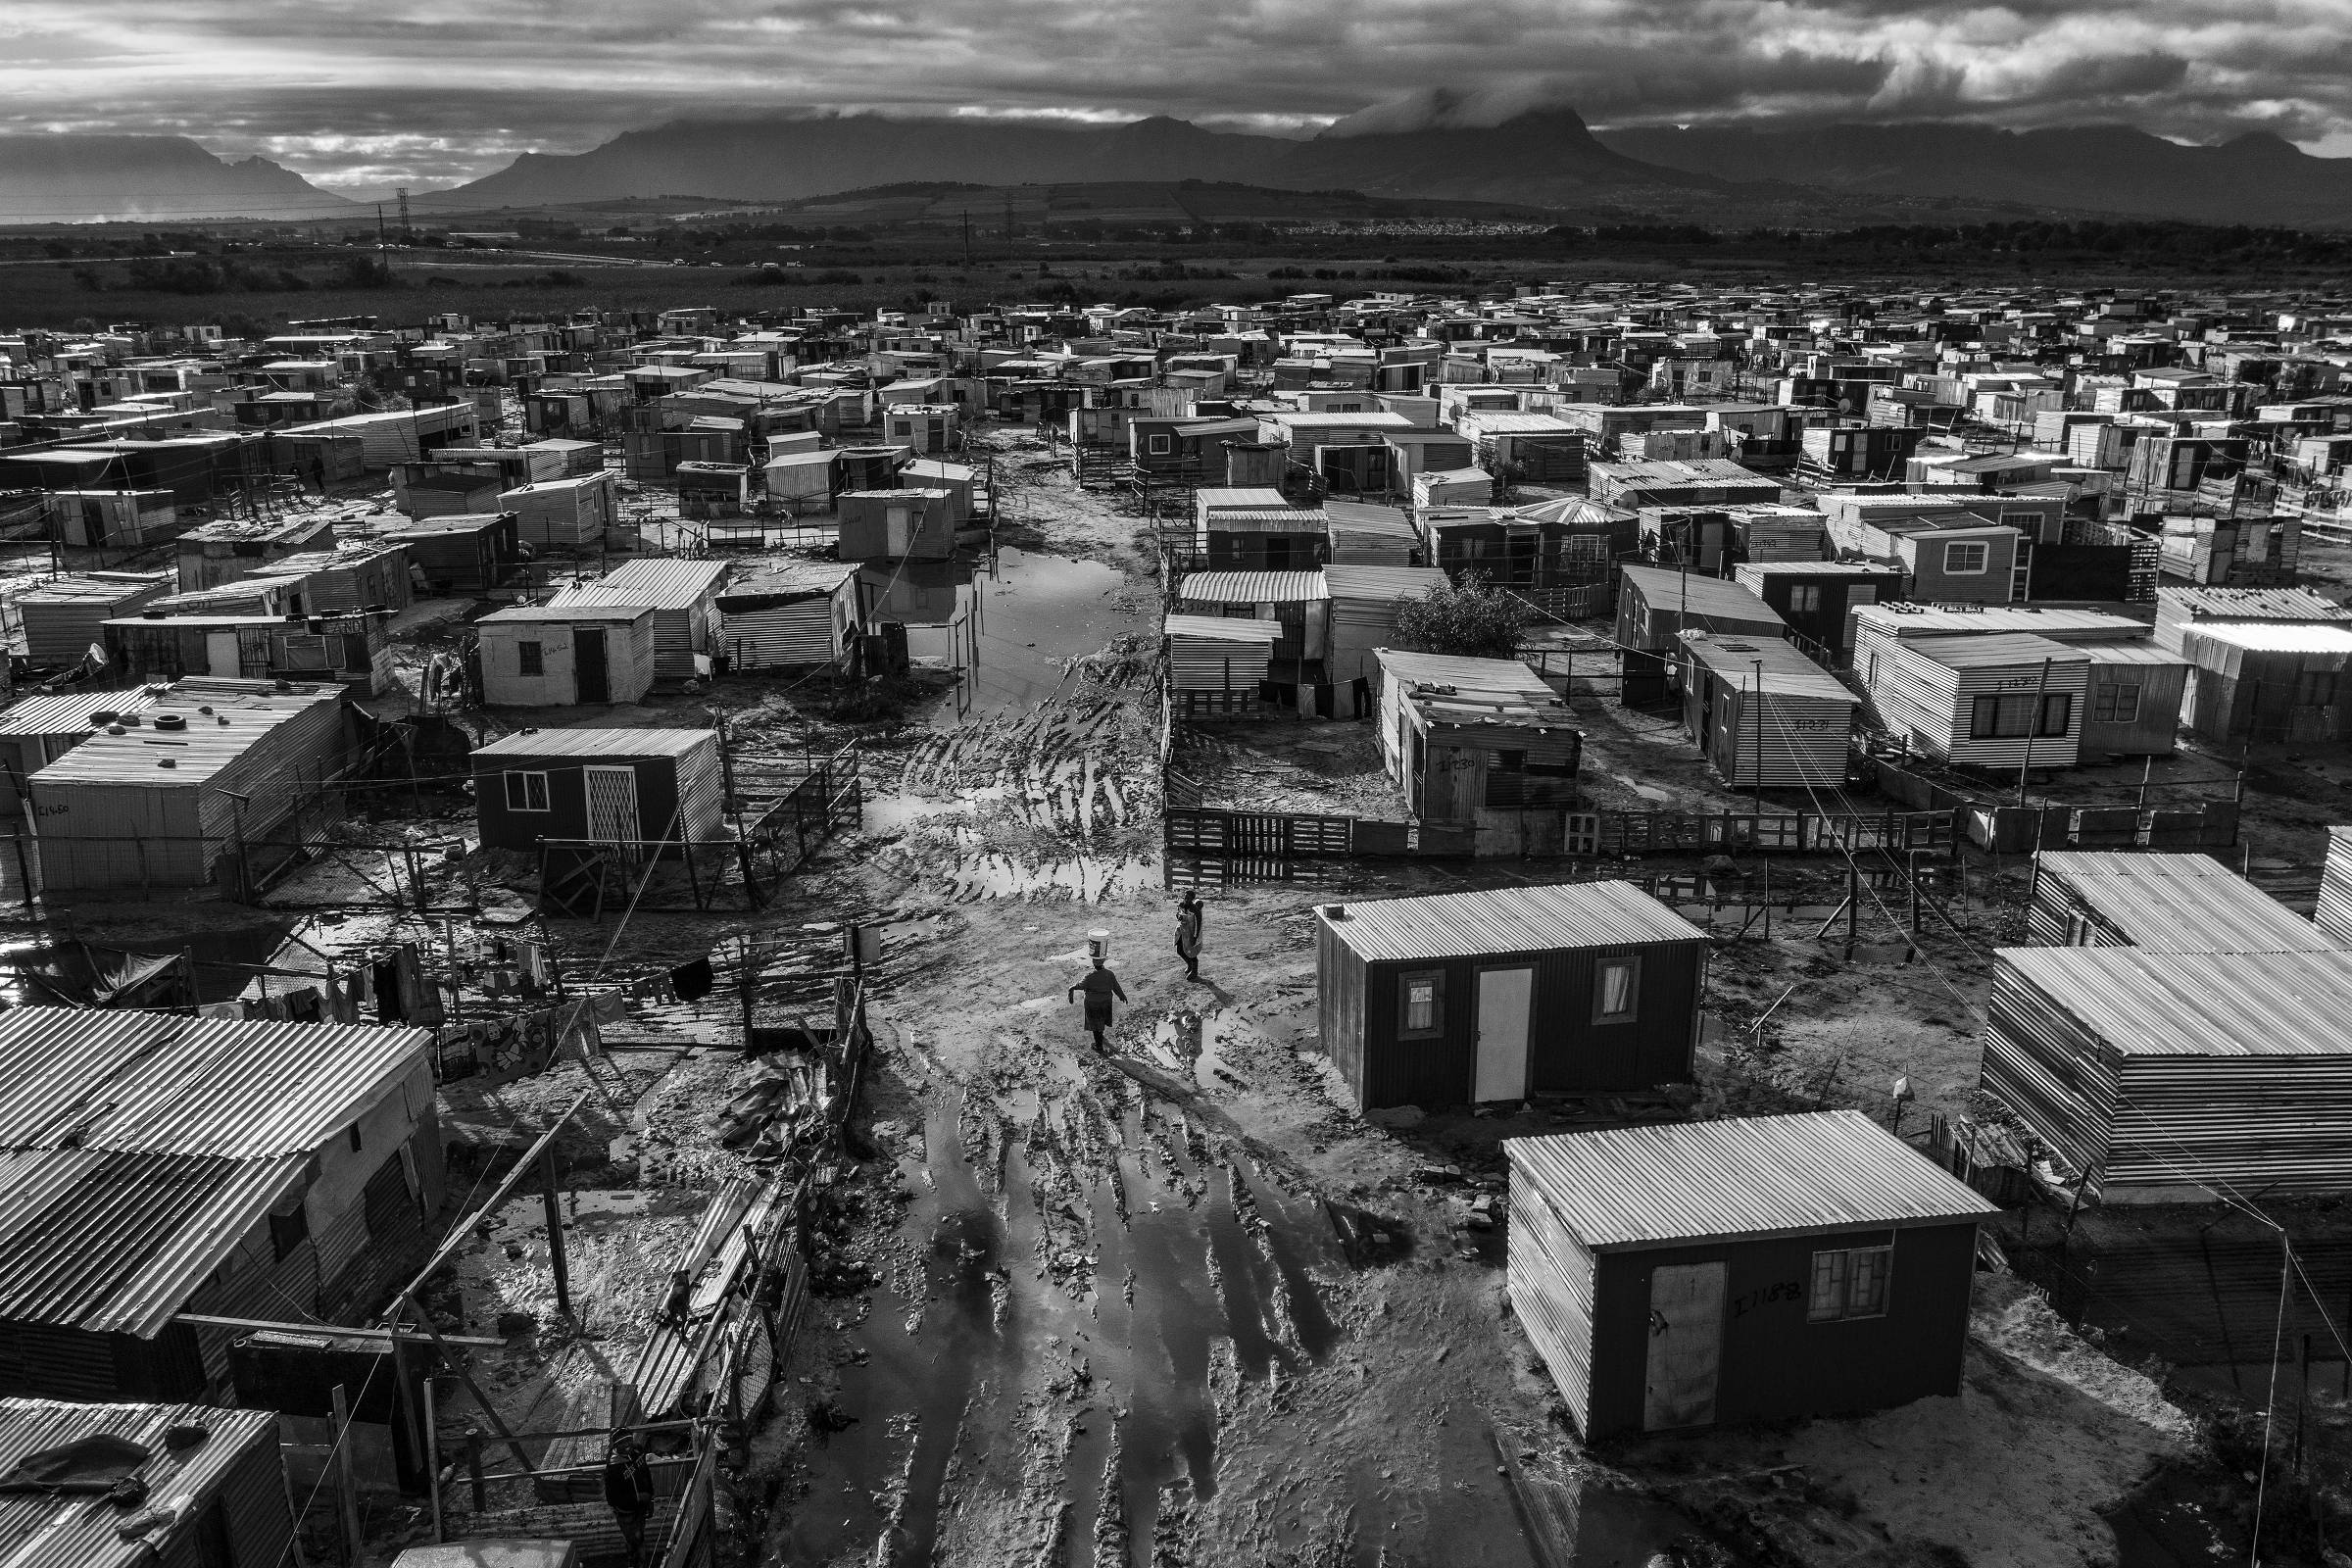 Khayelitsha township in Cape Town, where blacks were sent during apartheid